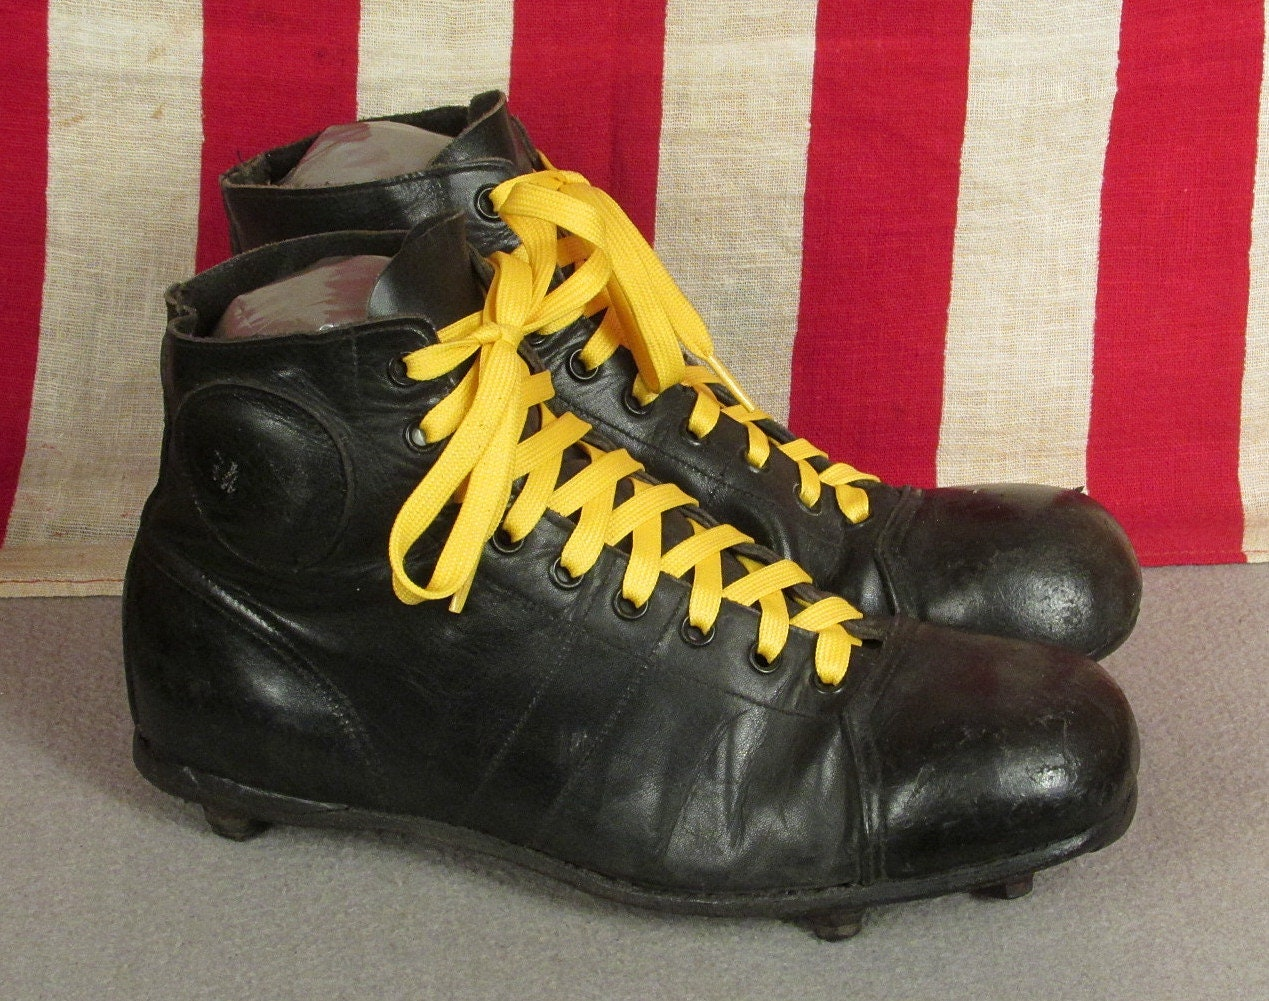 Vintage 1930s Leather Stacked Soccer Football Boots Rugby Shoes Stacked Leather Cleats Antique e089e1